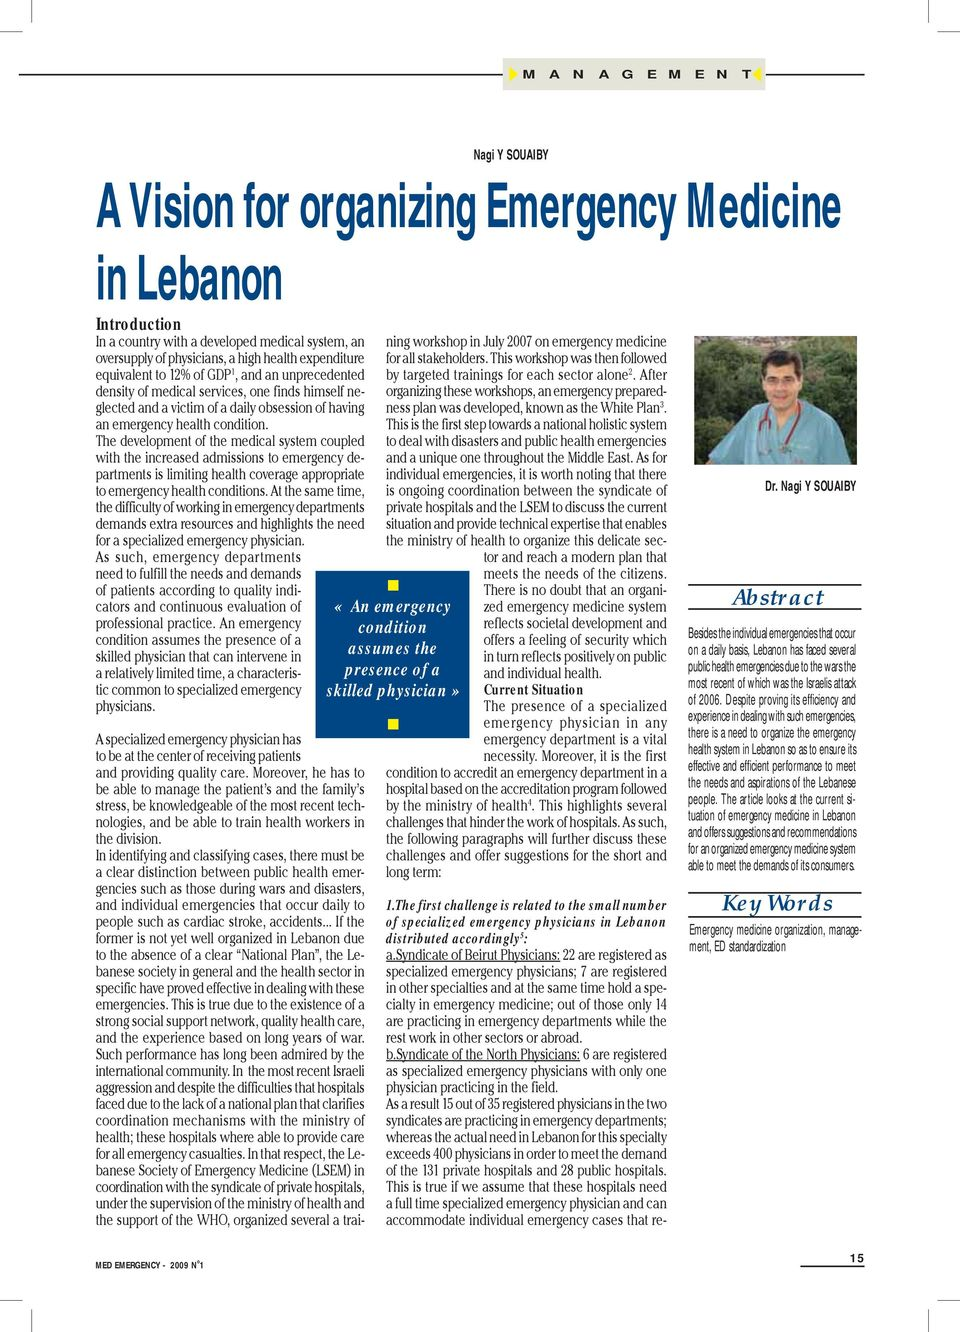 The development of the medical system coupled with the increased admissions to emergency departments is limiting health coverage appropriate to emergency health conditions.